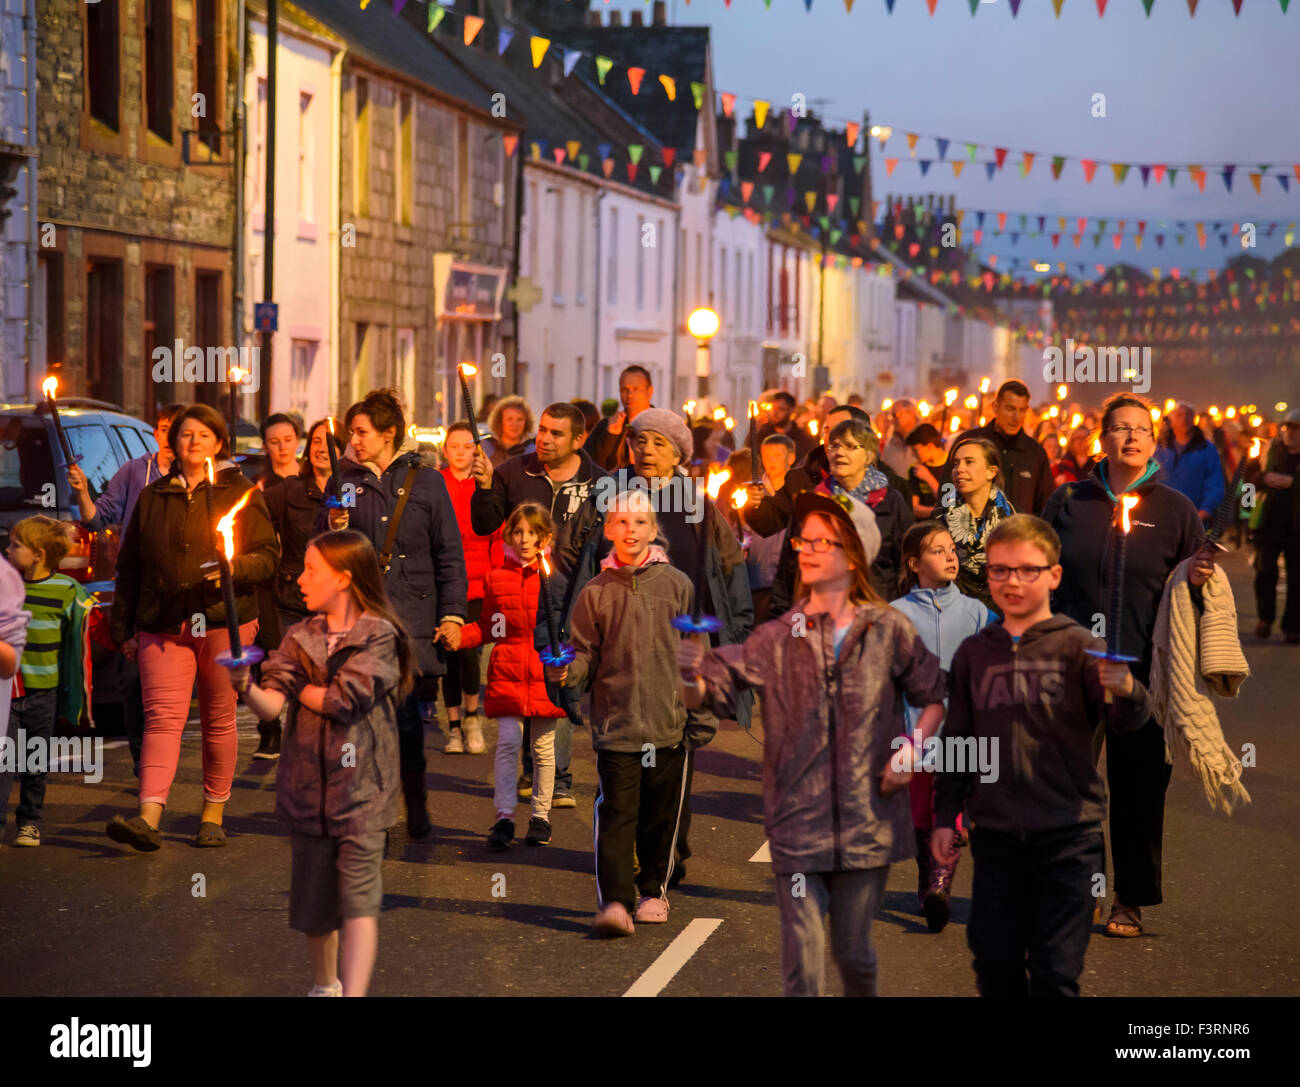 Gatehouse of Fleet Gala 2015 Torchlight Parade and Fireworks display - Stock Image